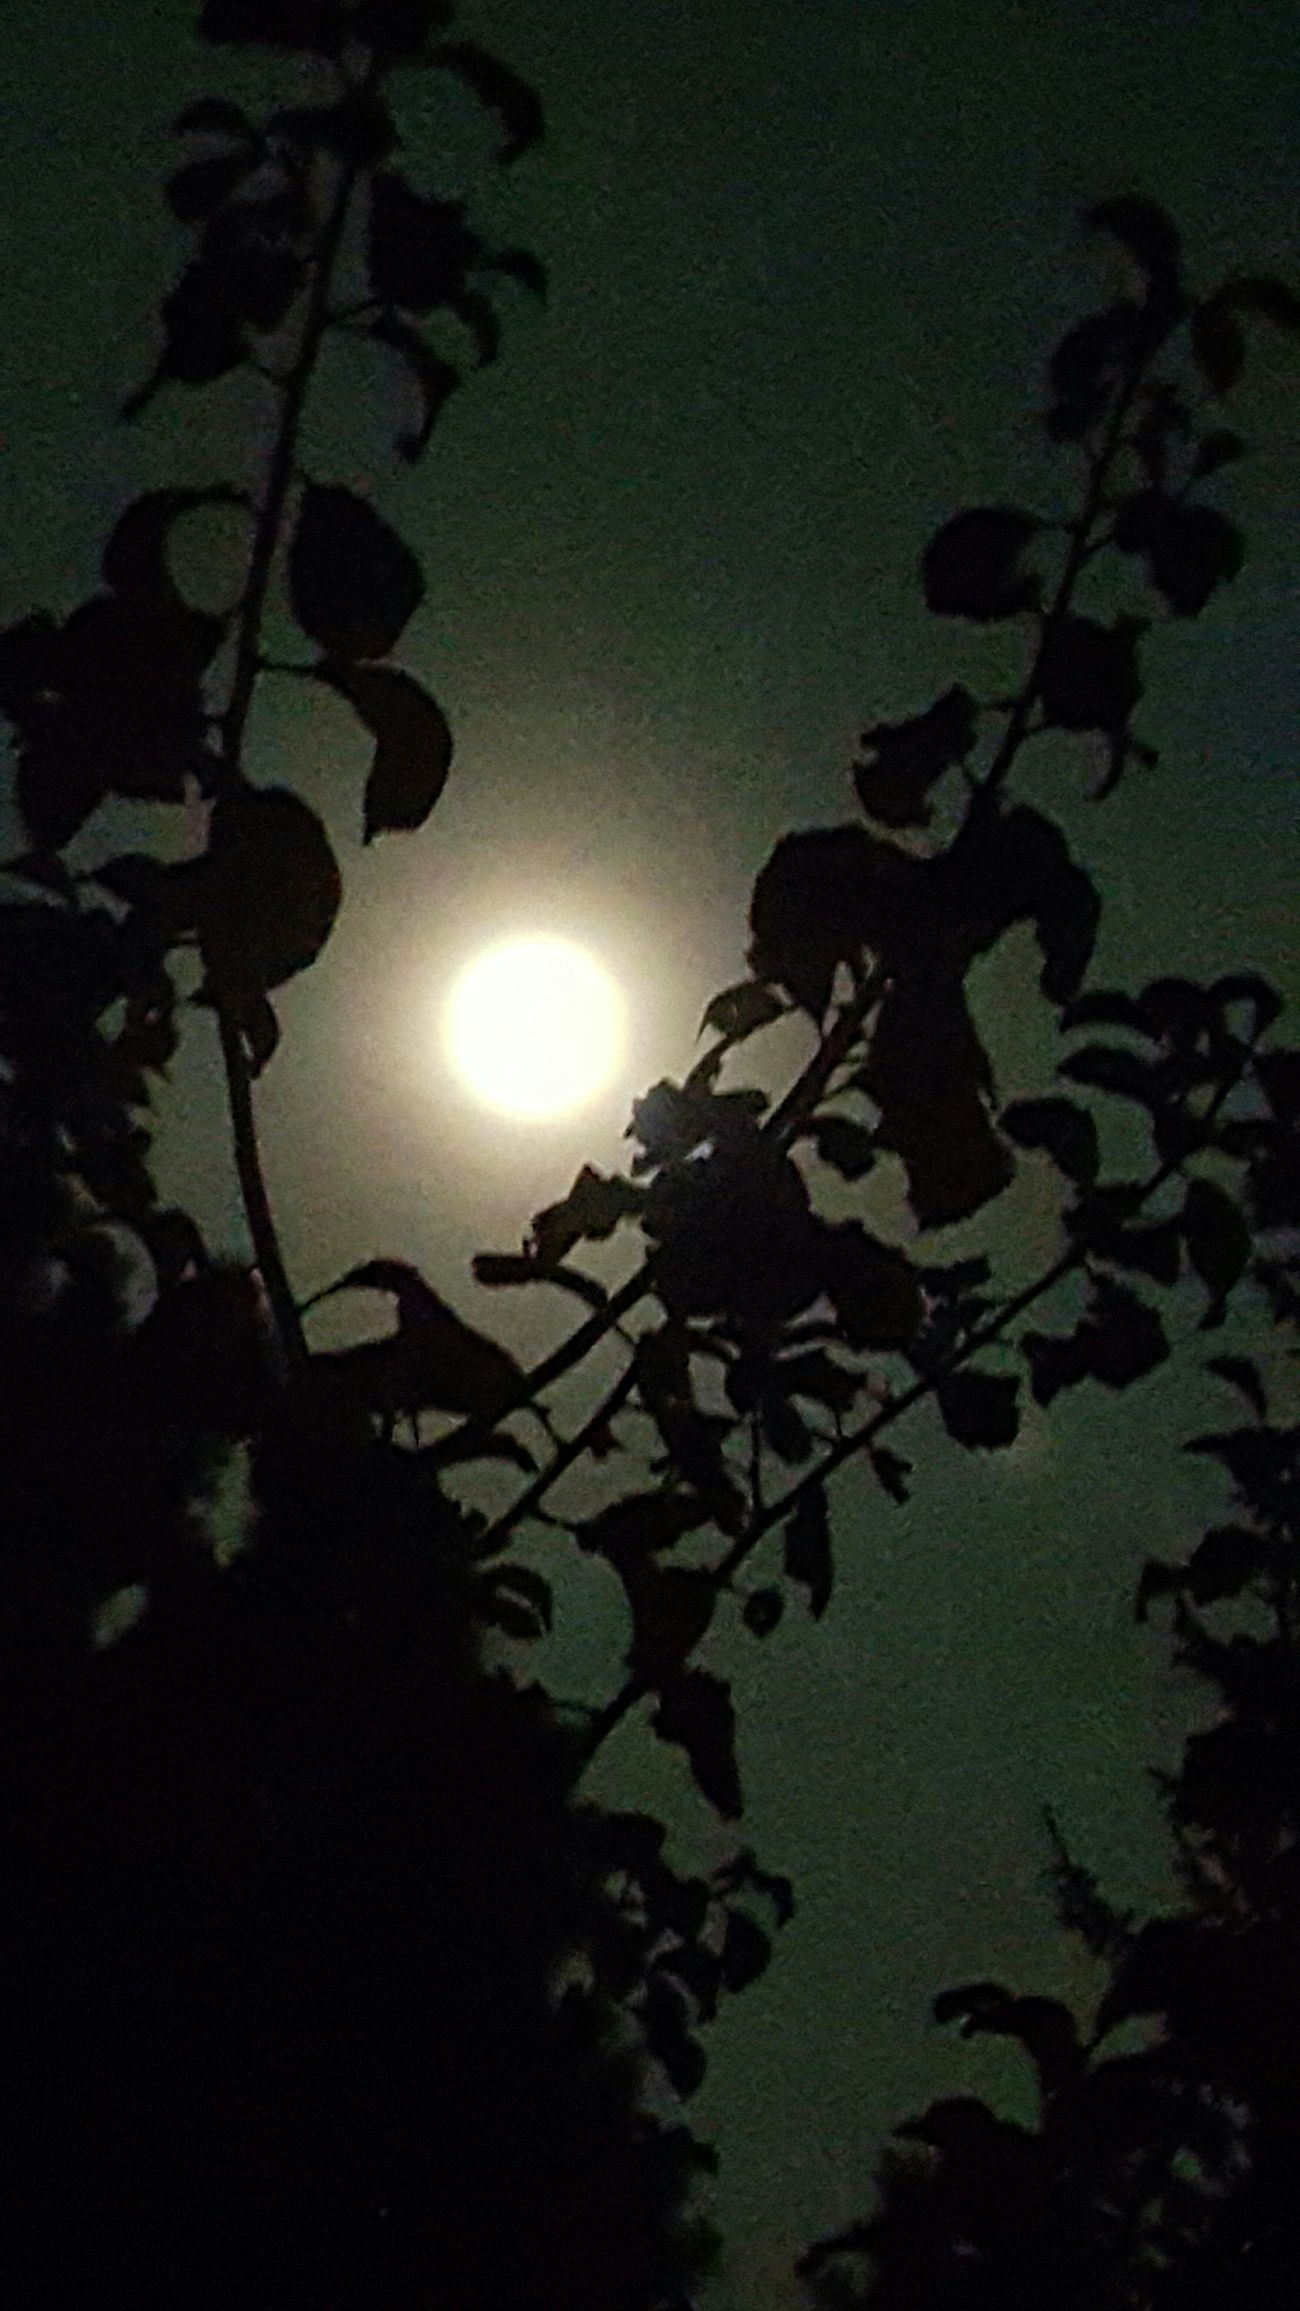 The Week Of Eyeem Vollmond Moonlight Light And Shadow Moonlight In The Dark This Week On Eyeem Malijasi